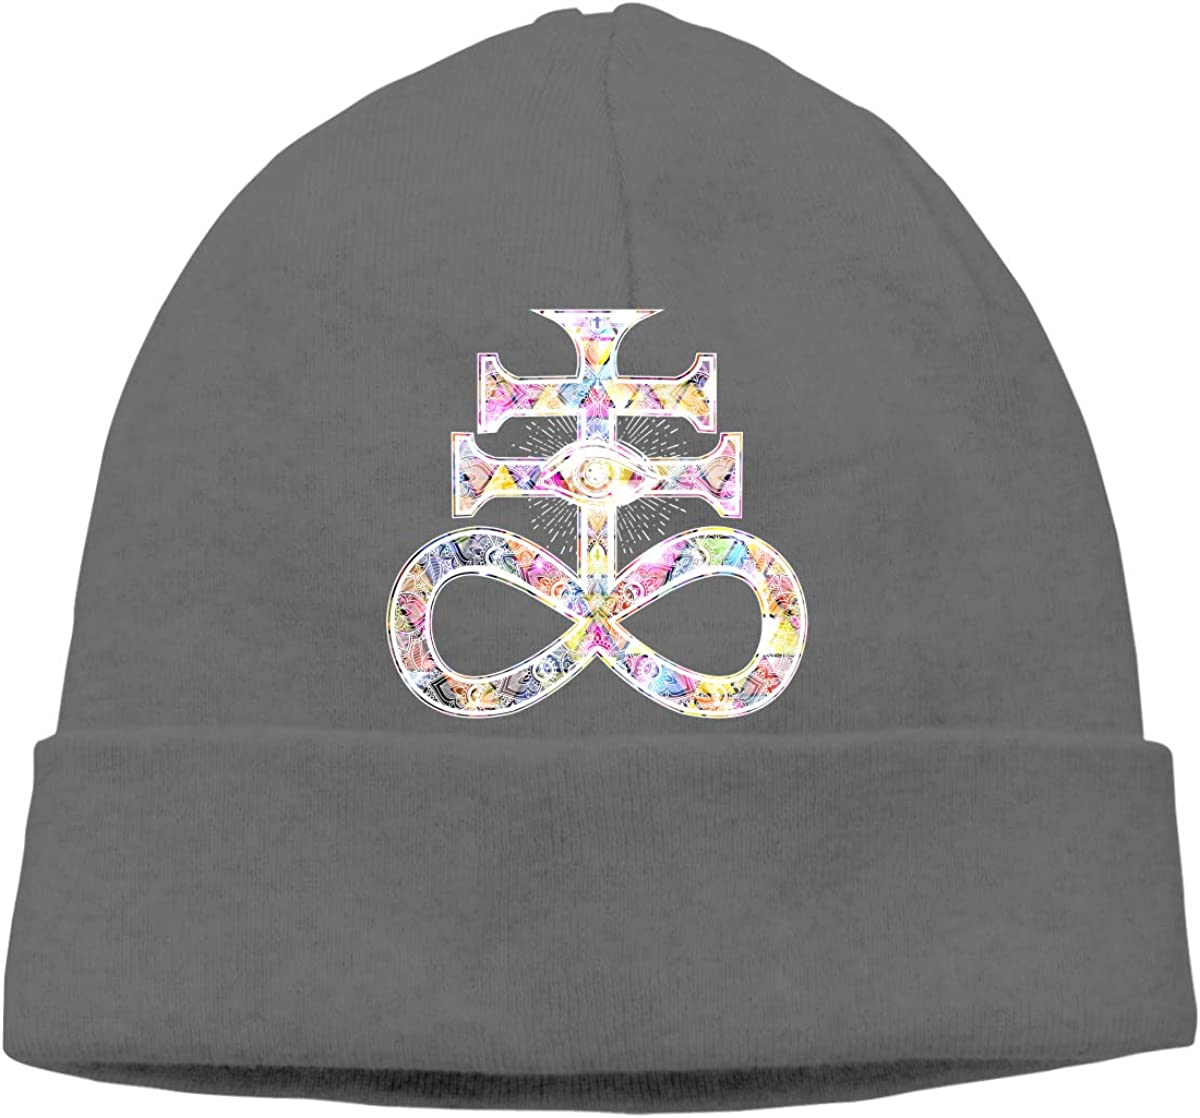 Leviathan Cross Symbol Mens Beanie Cap Skull Cap Winter Warm Knitting Hats.